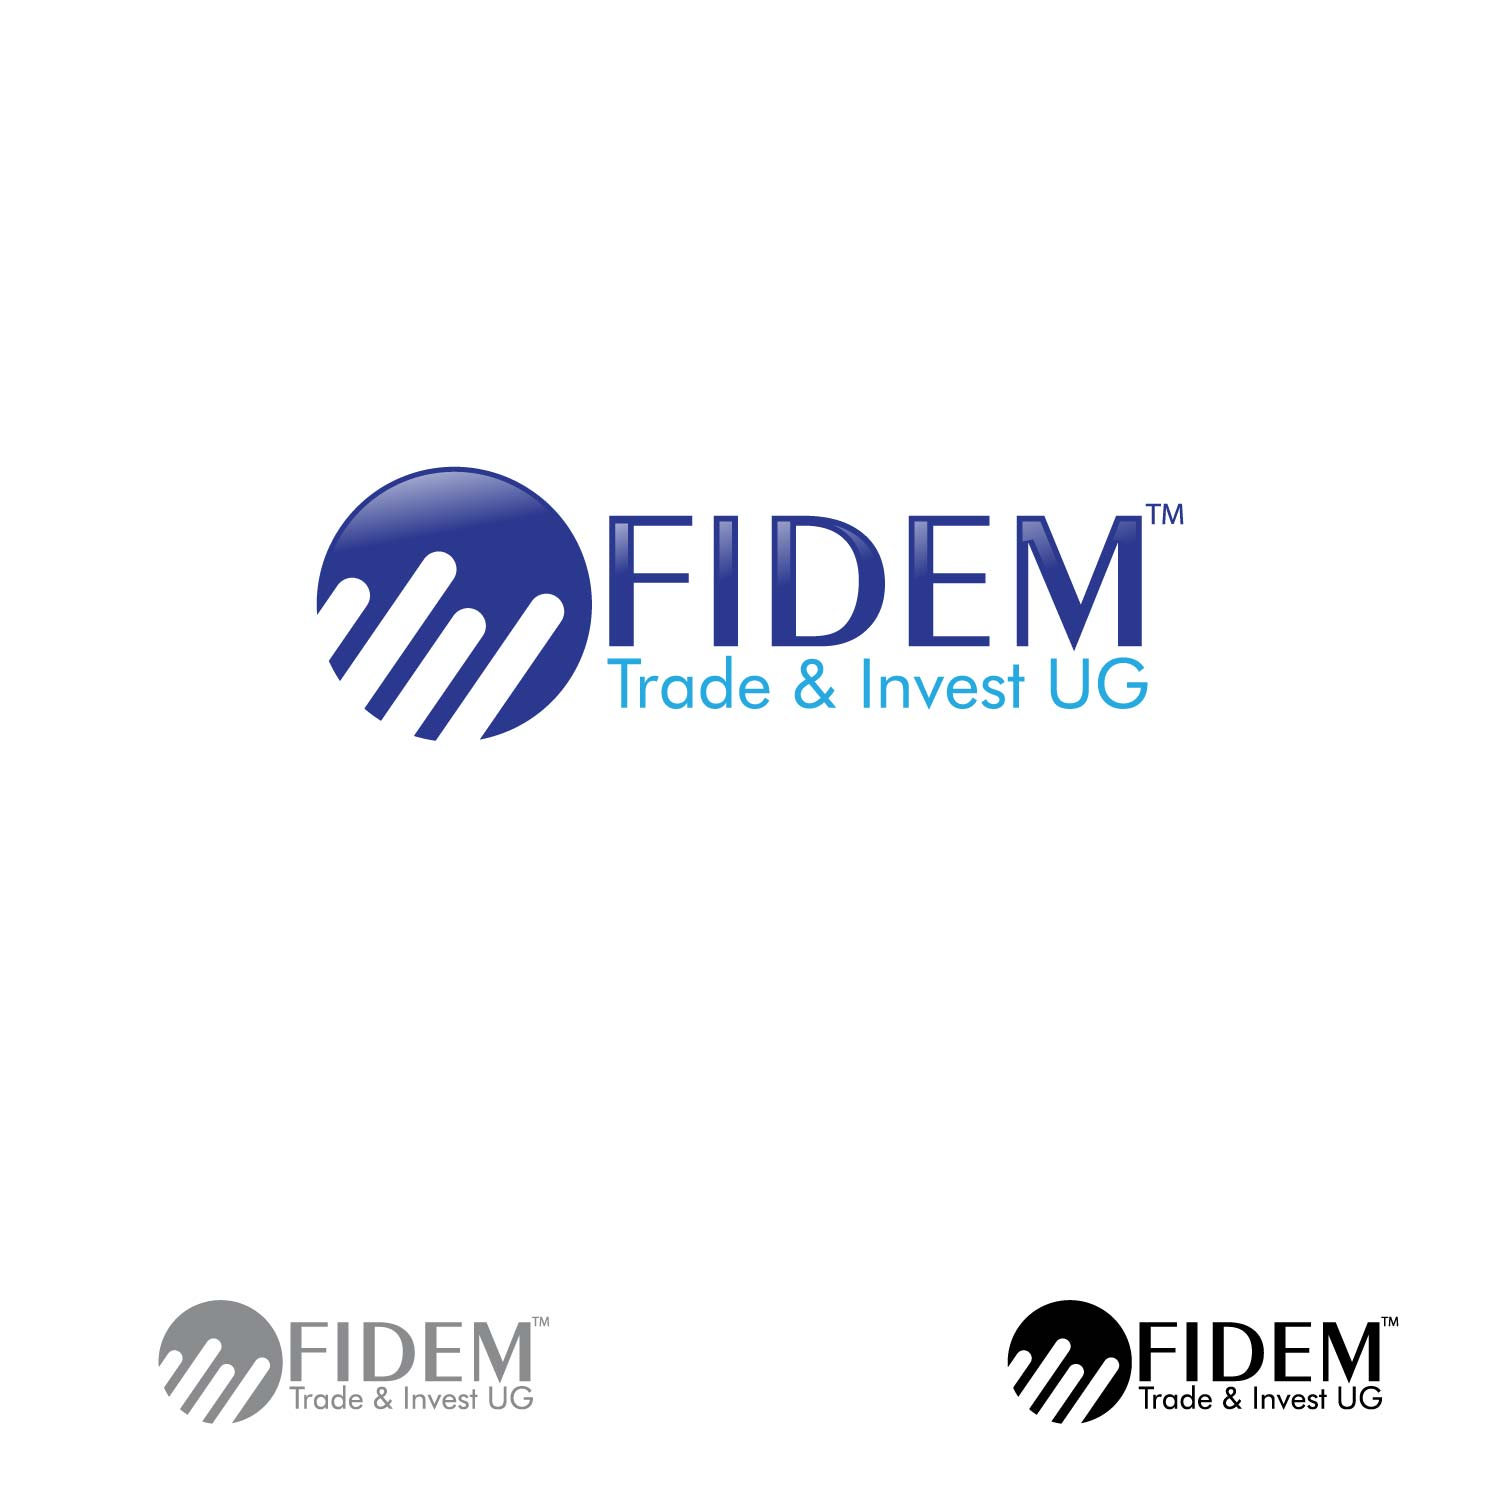 Logo Design by lagalag - Entry No. 112 in the Logo Design Contest Professional Logo Design for FIDEM Trade & Invest UG.